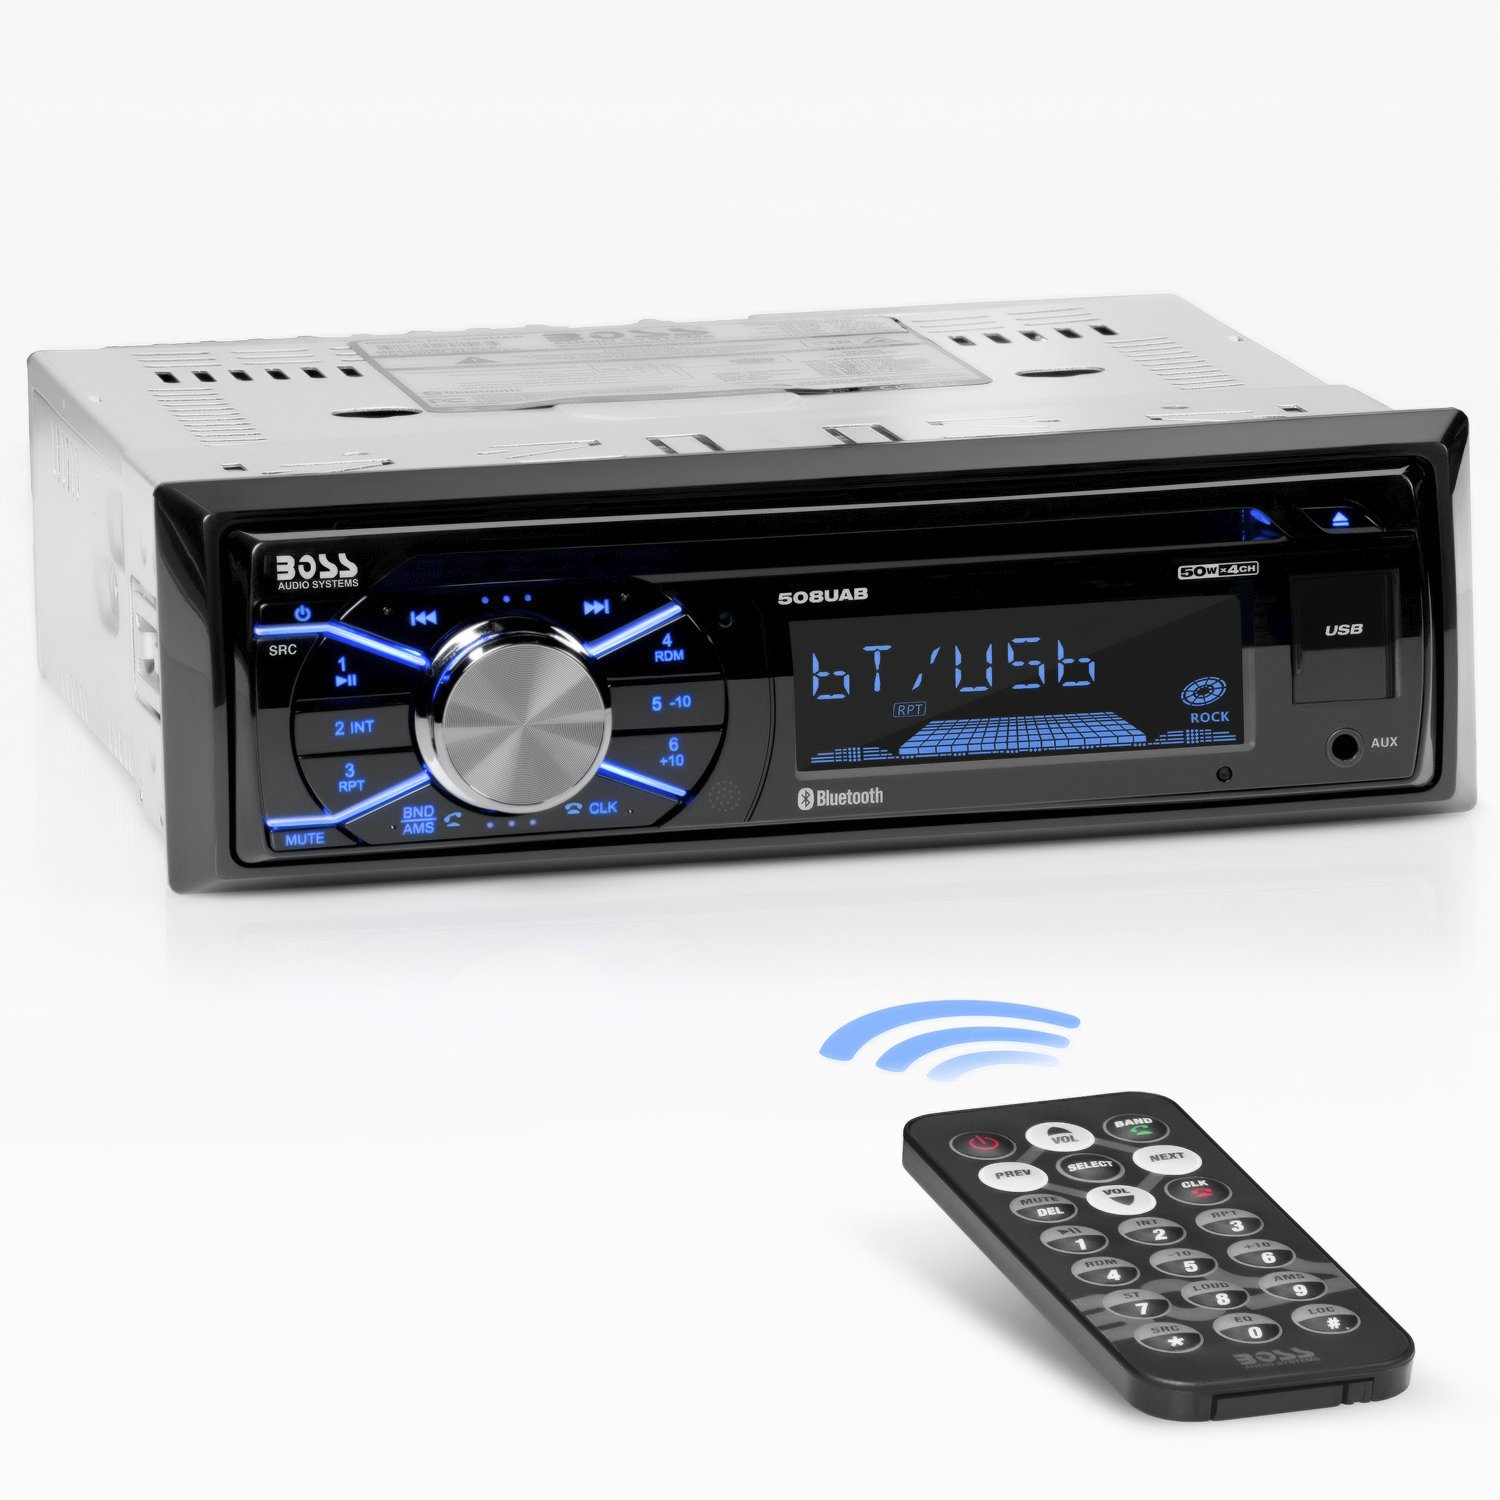 Boss Audio Systems 508UAB Multimedia Car Stereo - Single Din, Bluetooth Audio/Hands-Free Calling, Built-in Microphone, CD/MP3/USB/AUX Input, AM/FM Radio Receiver, Wireless Remote Control by BOSS Audio Systems